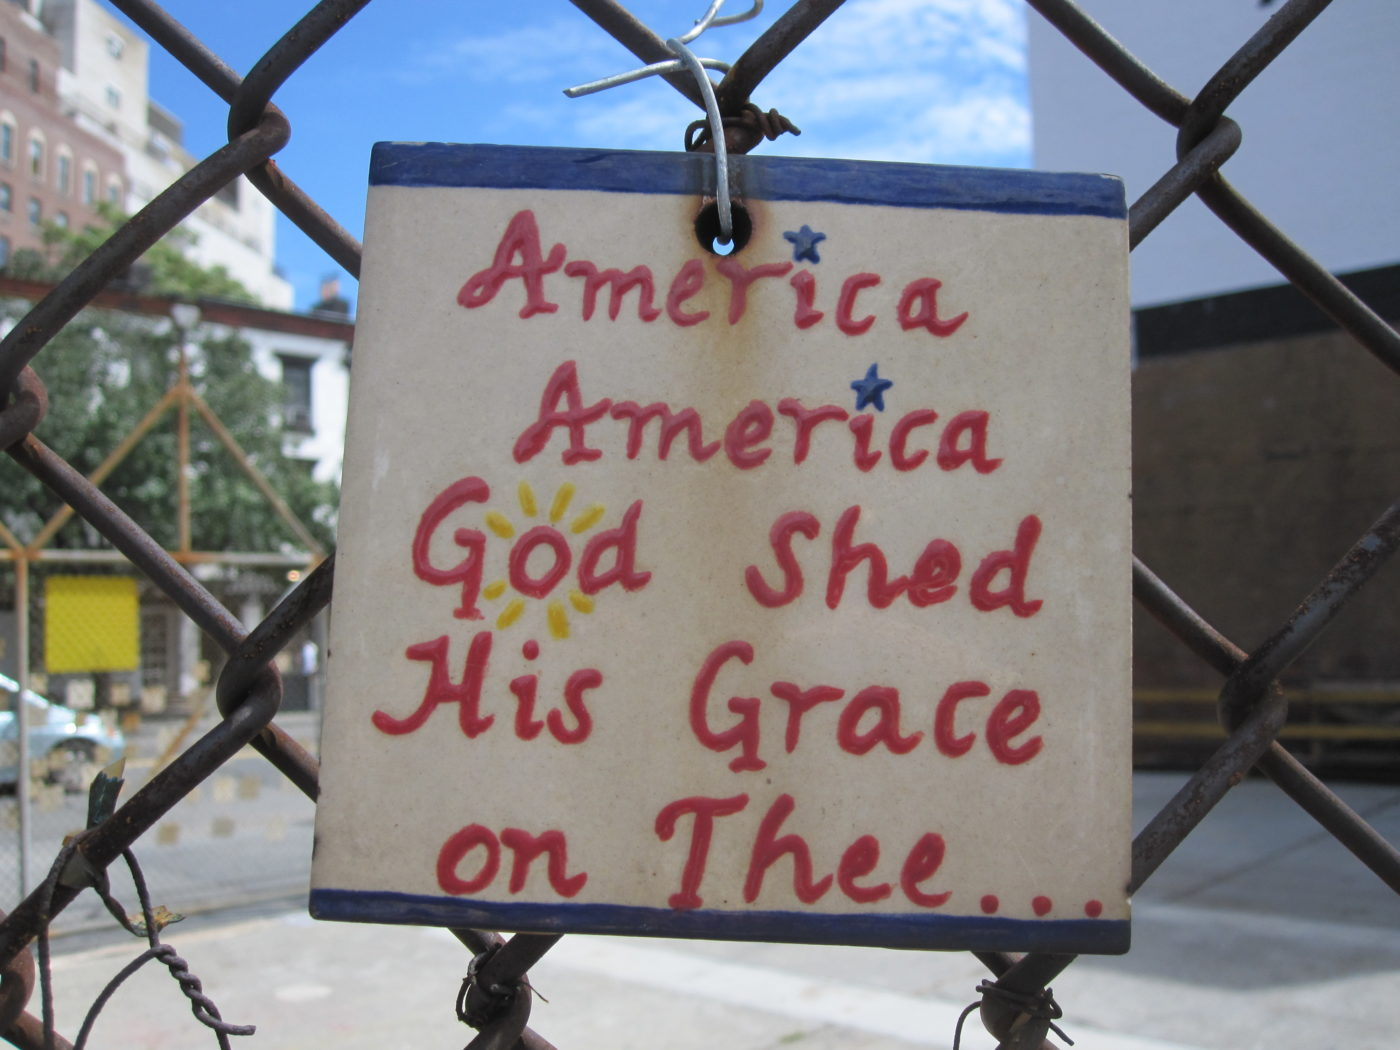 America America God Shed His Grace on Thee 09_07_2011.JPG